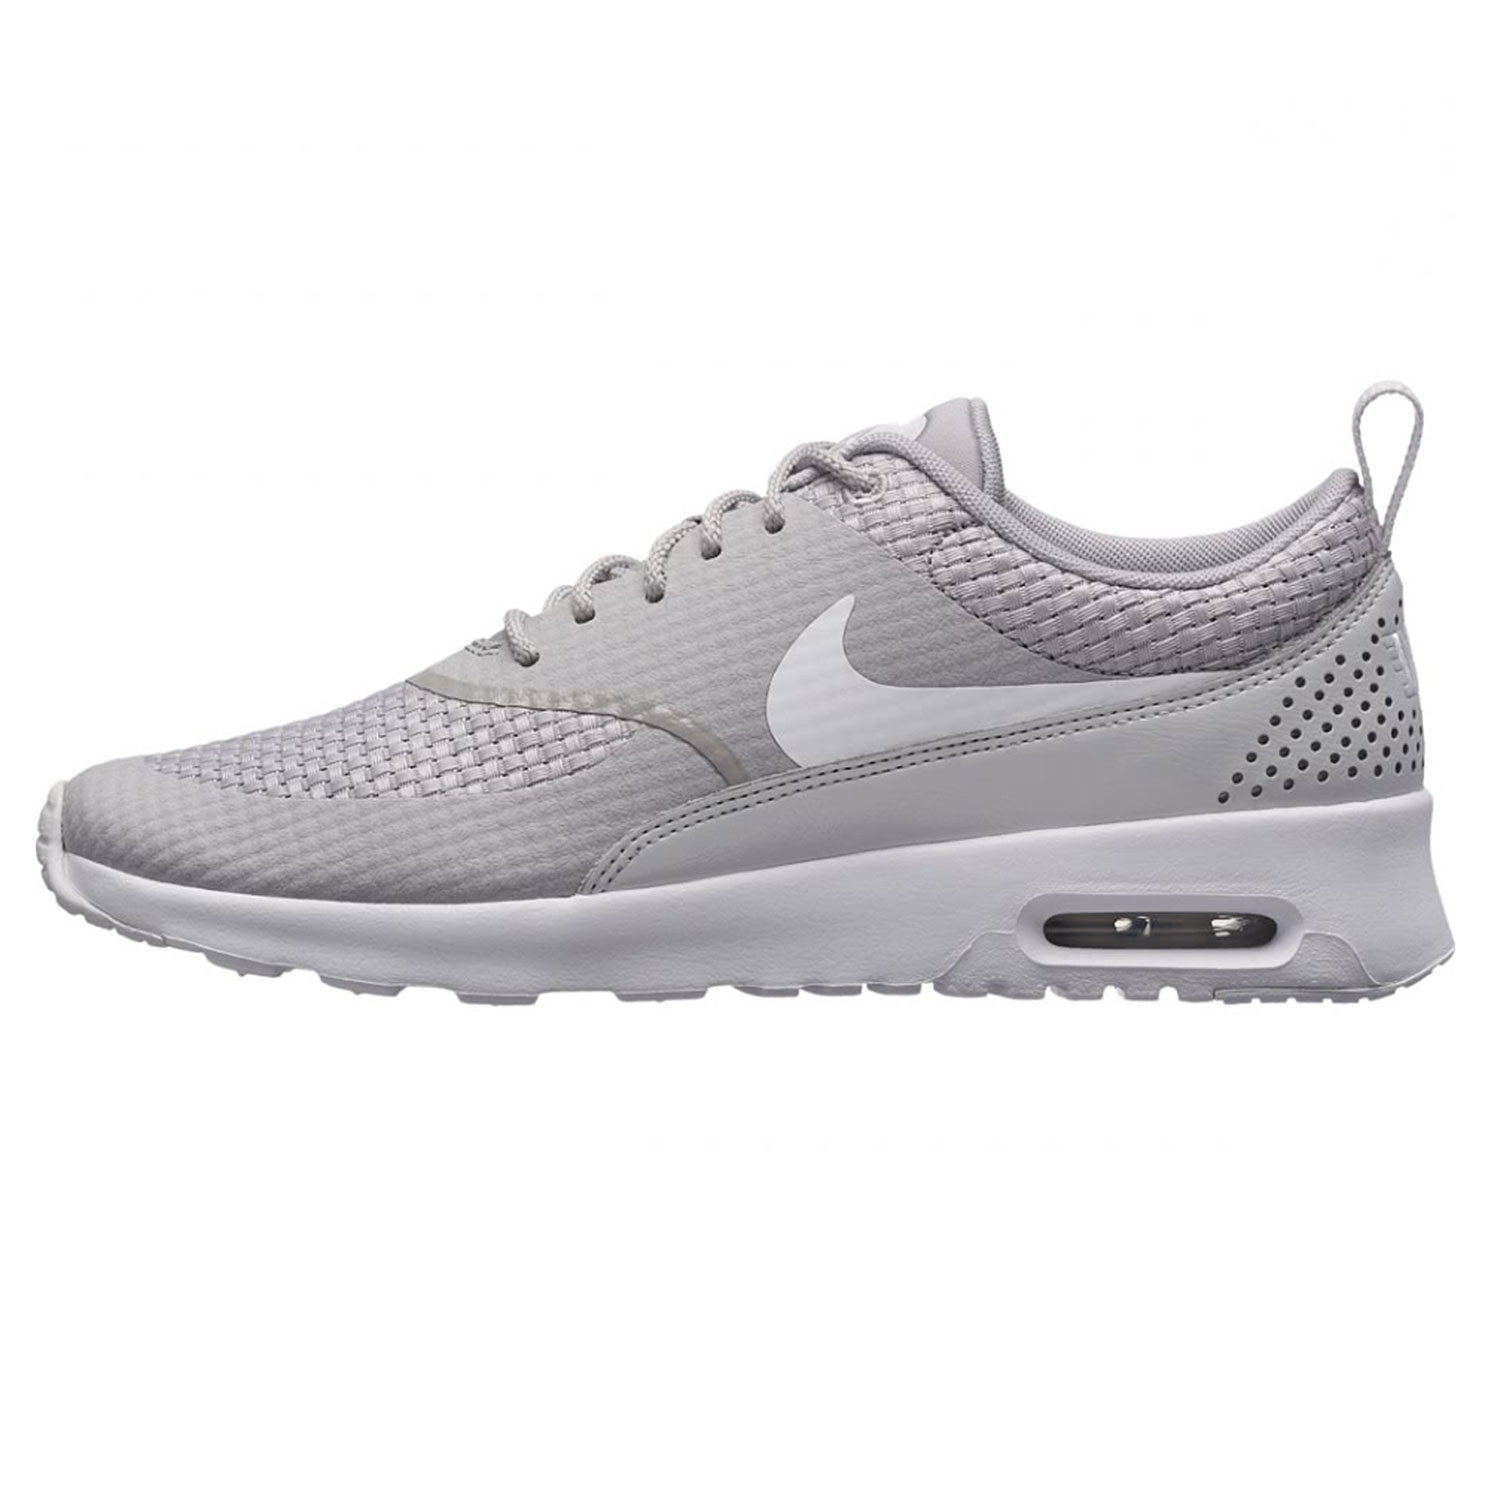 nike wmns air max thea premium damen sneaker grau 616723 023. Black Bedroom Furniture Sets. Home Design Ideas